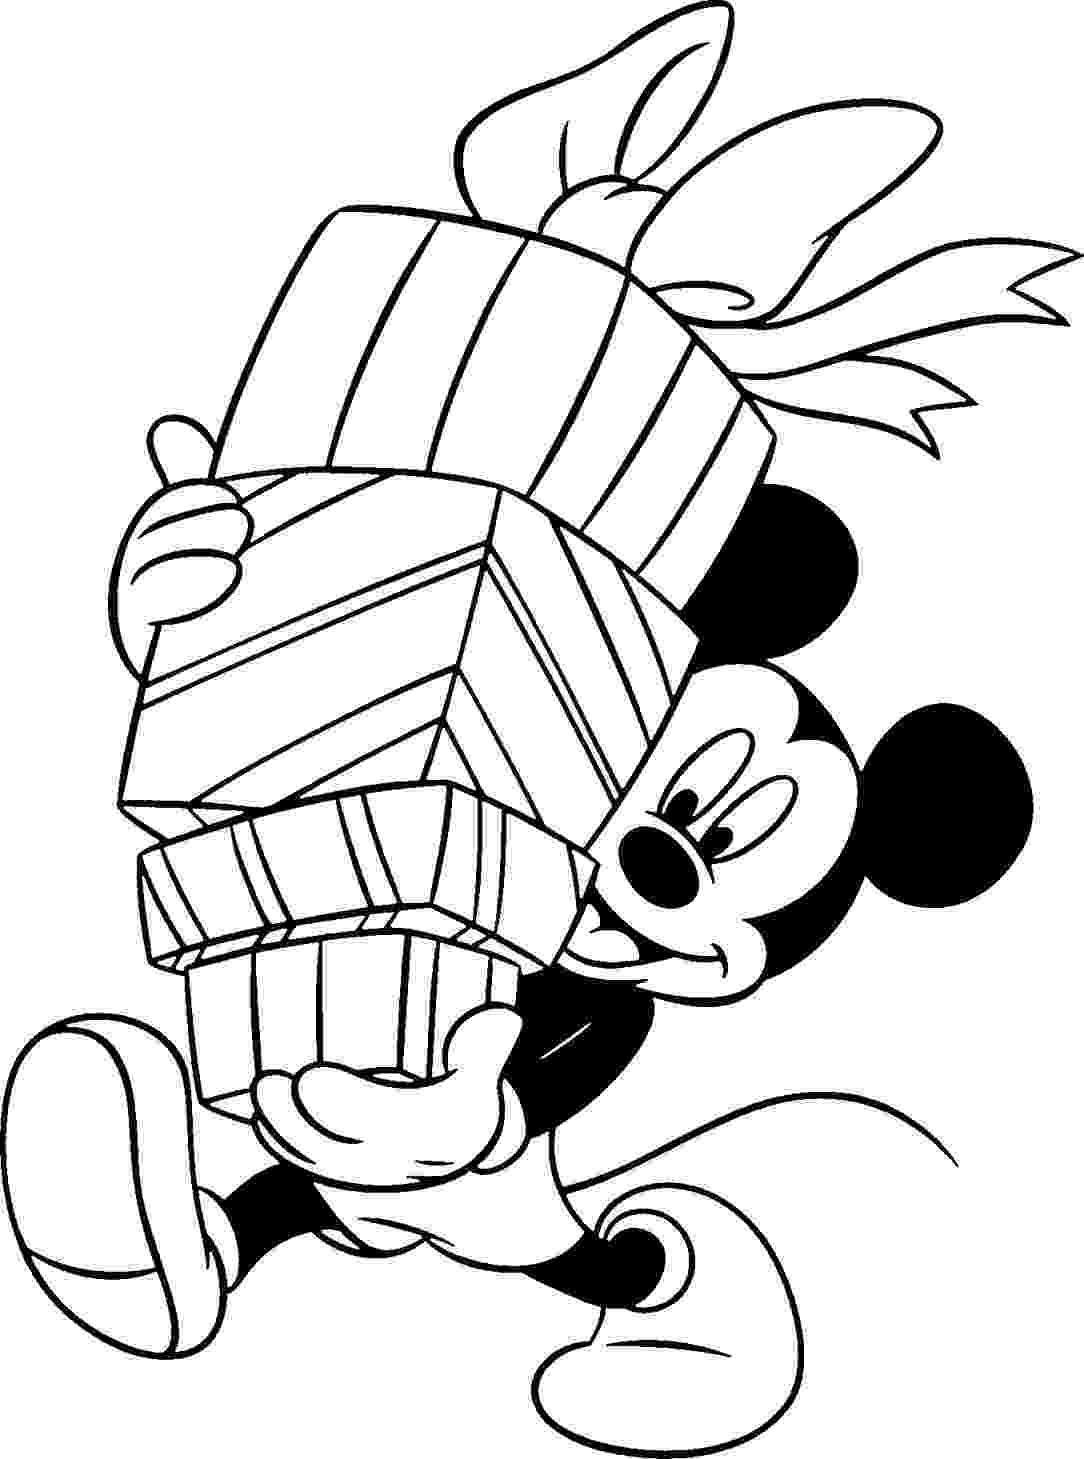 colouring picture of mickey mouse may 2010 gtgt disney coloring pages of mickey picture colouring mouse